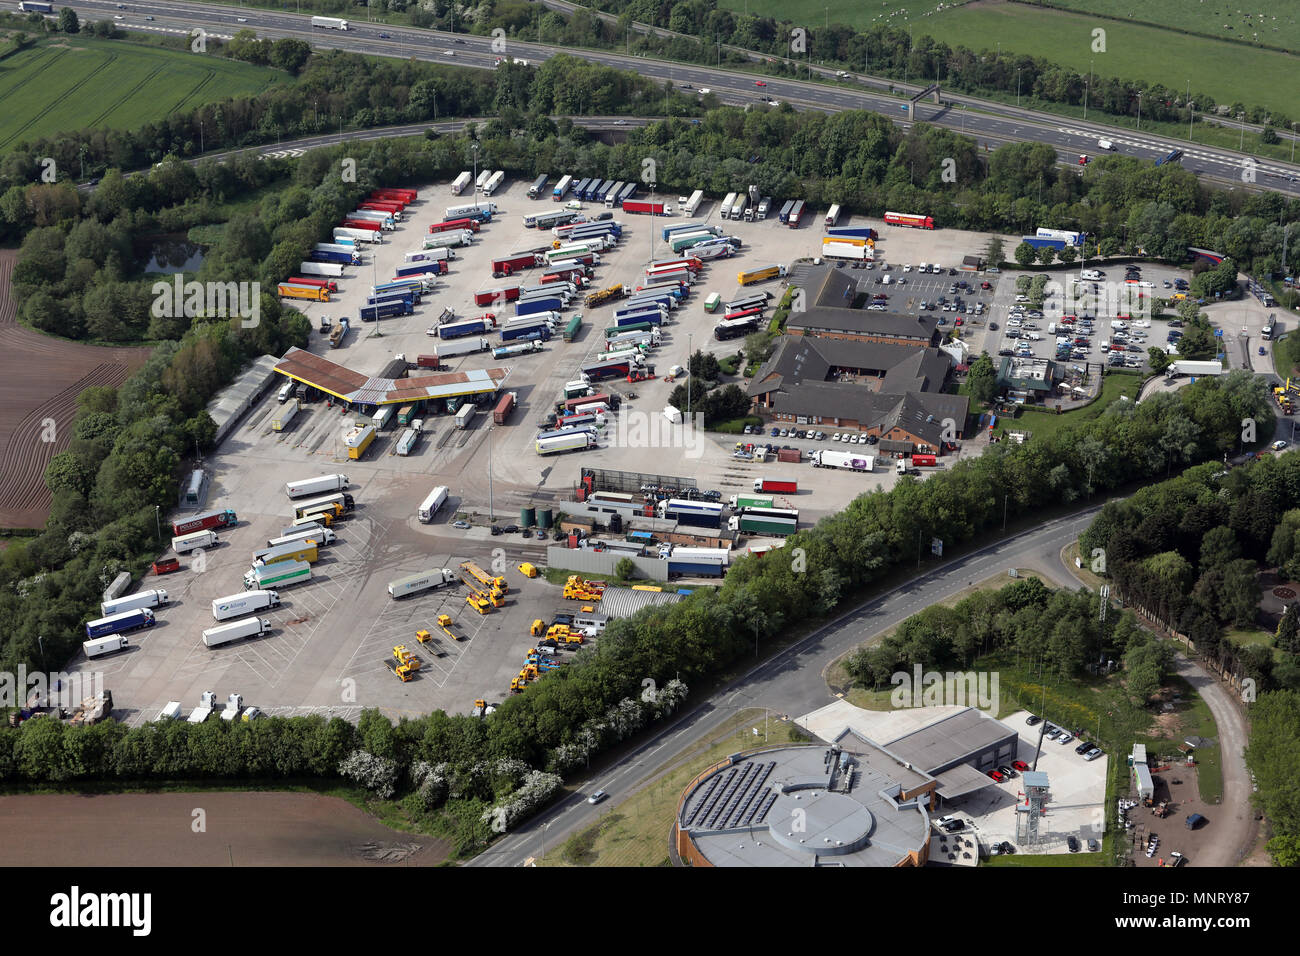 aerial view of Lymm Services (Lymm Poplar 2000 Services) on the M6, Cheshire - Stock Image